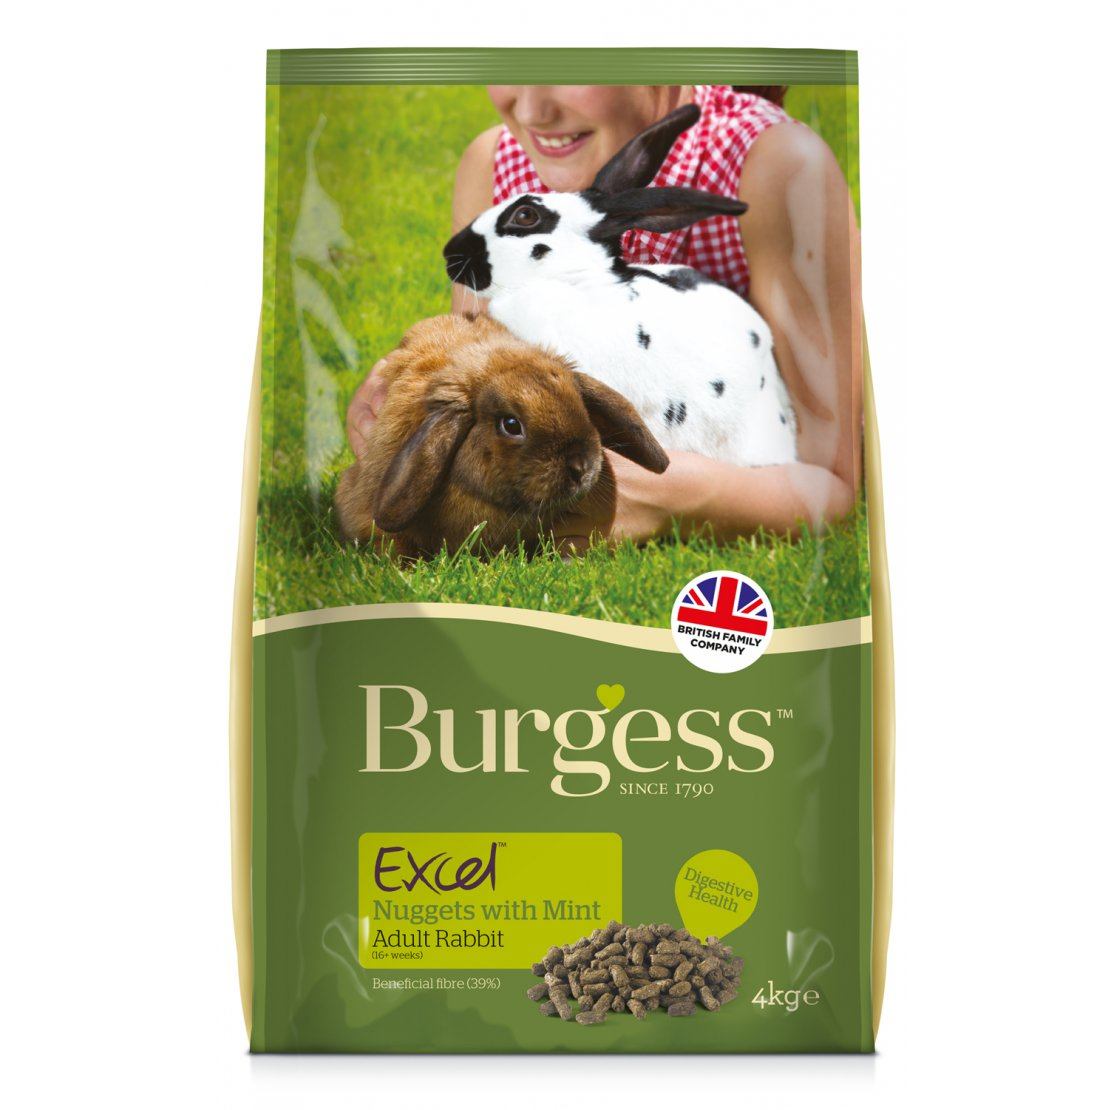 ONLY AVAILABLE FOR LOCAL DELIVERY. Burgess Excel Rabbit Food